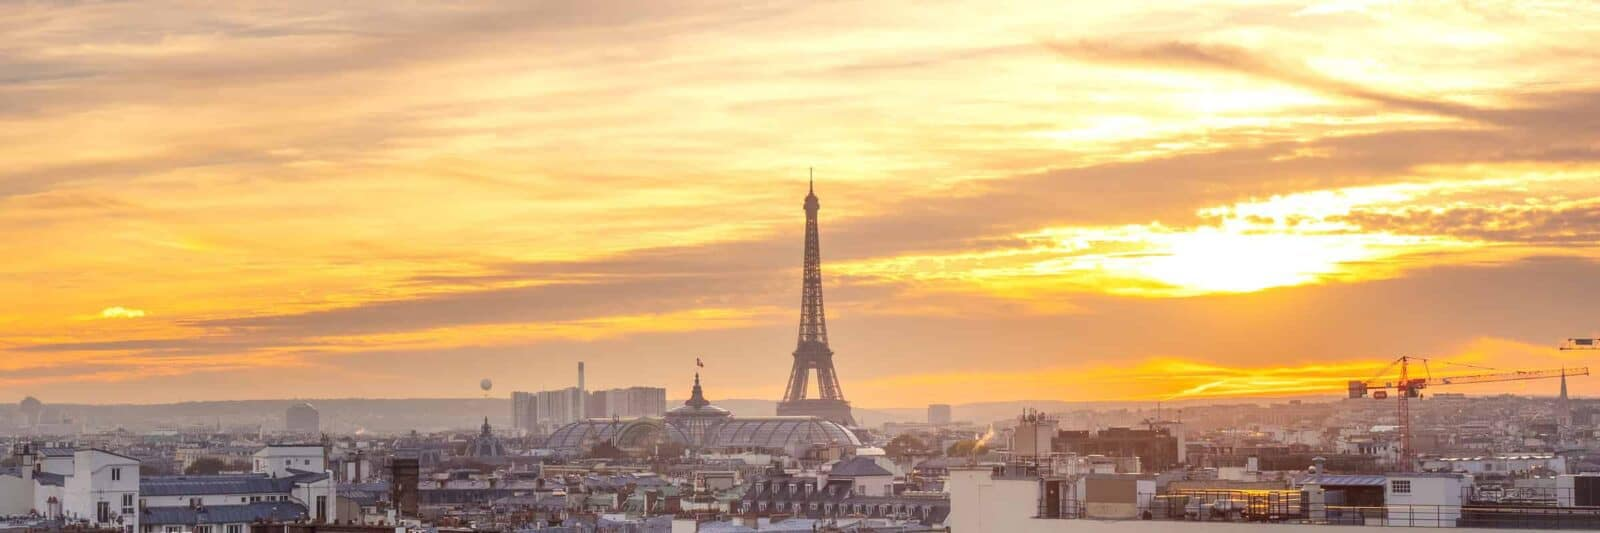 10 Best Locations To See A Paris Sunset Map To Find Them